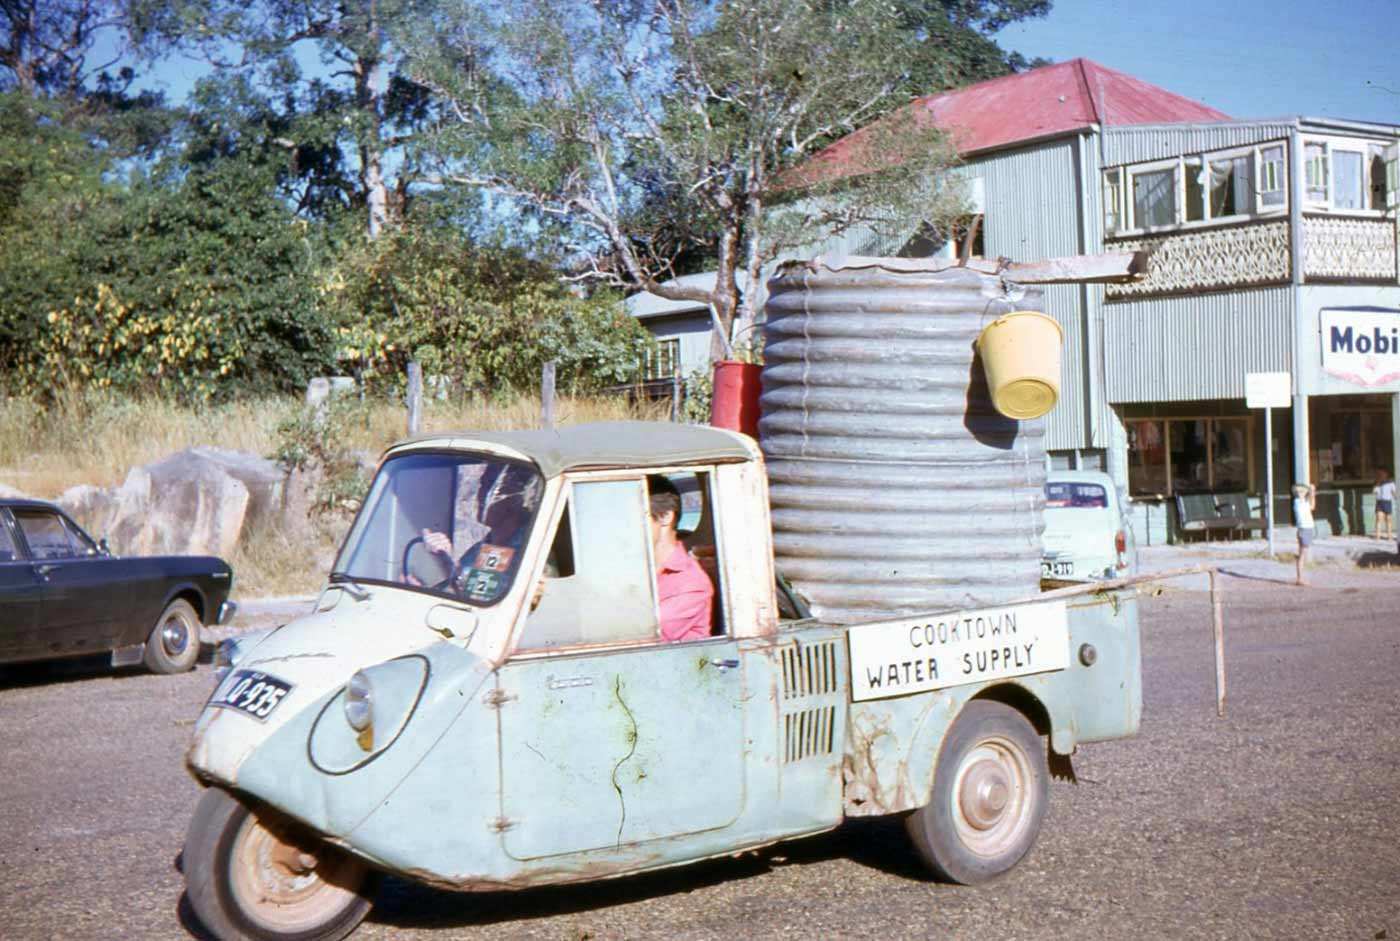 Colour photo and old blue vehicle carrying a tin water tank. On the side of the vehicle is a sign that reads 'COOKTOWN WATER SUPPLY'. - click to view larger image